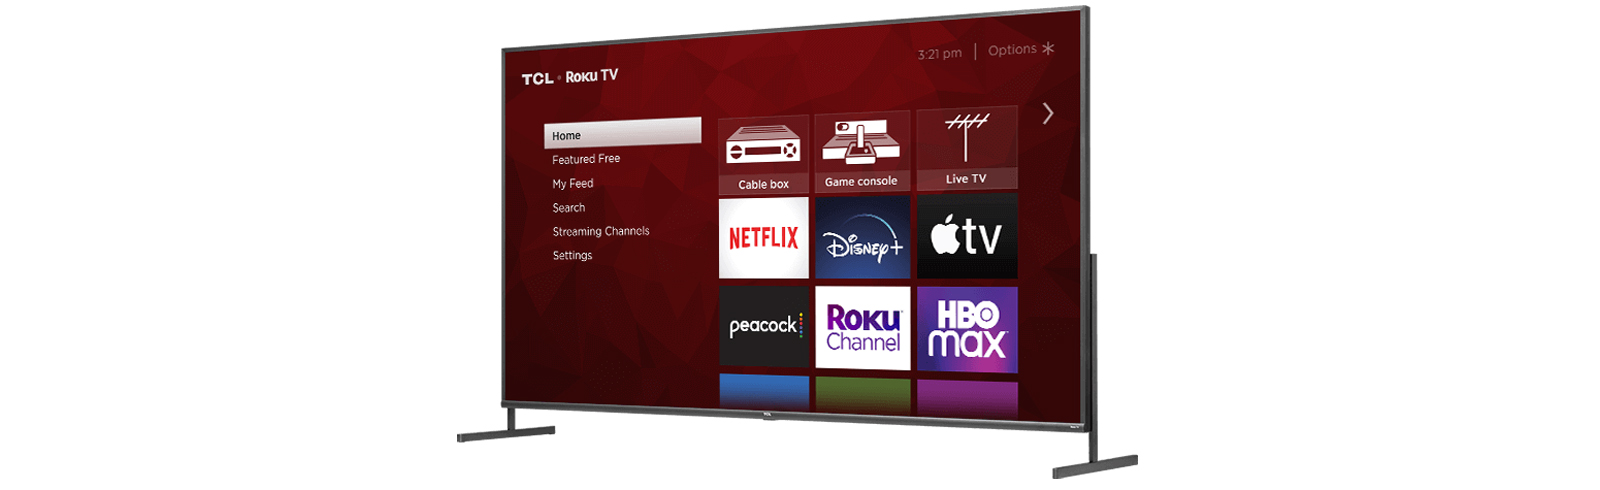 2021 TCL S435 4K Roku TV 4-series for the USA - specifications and prices